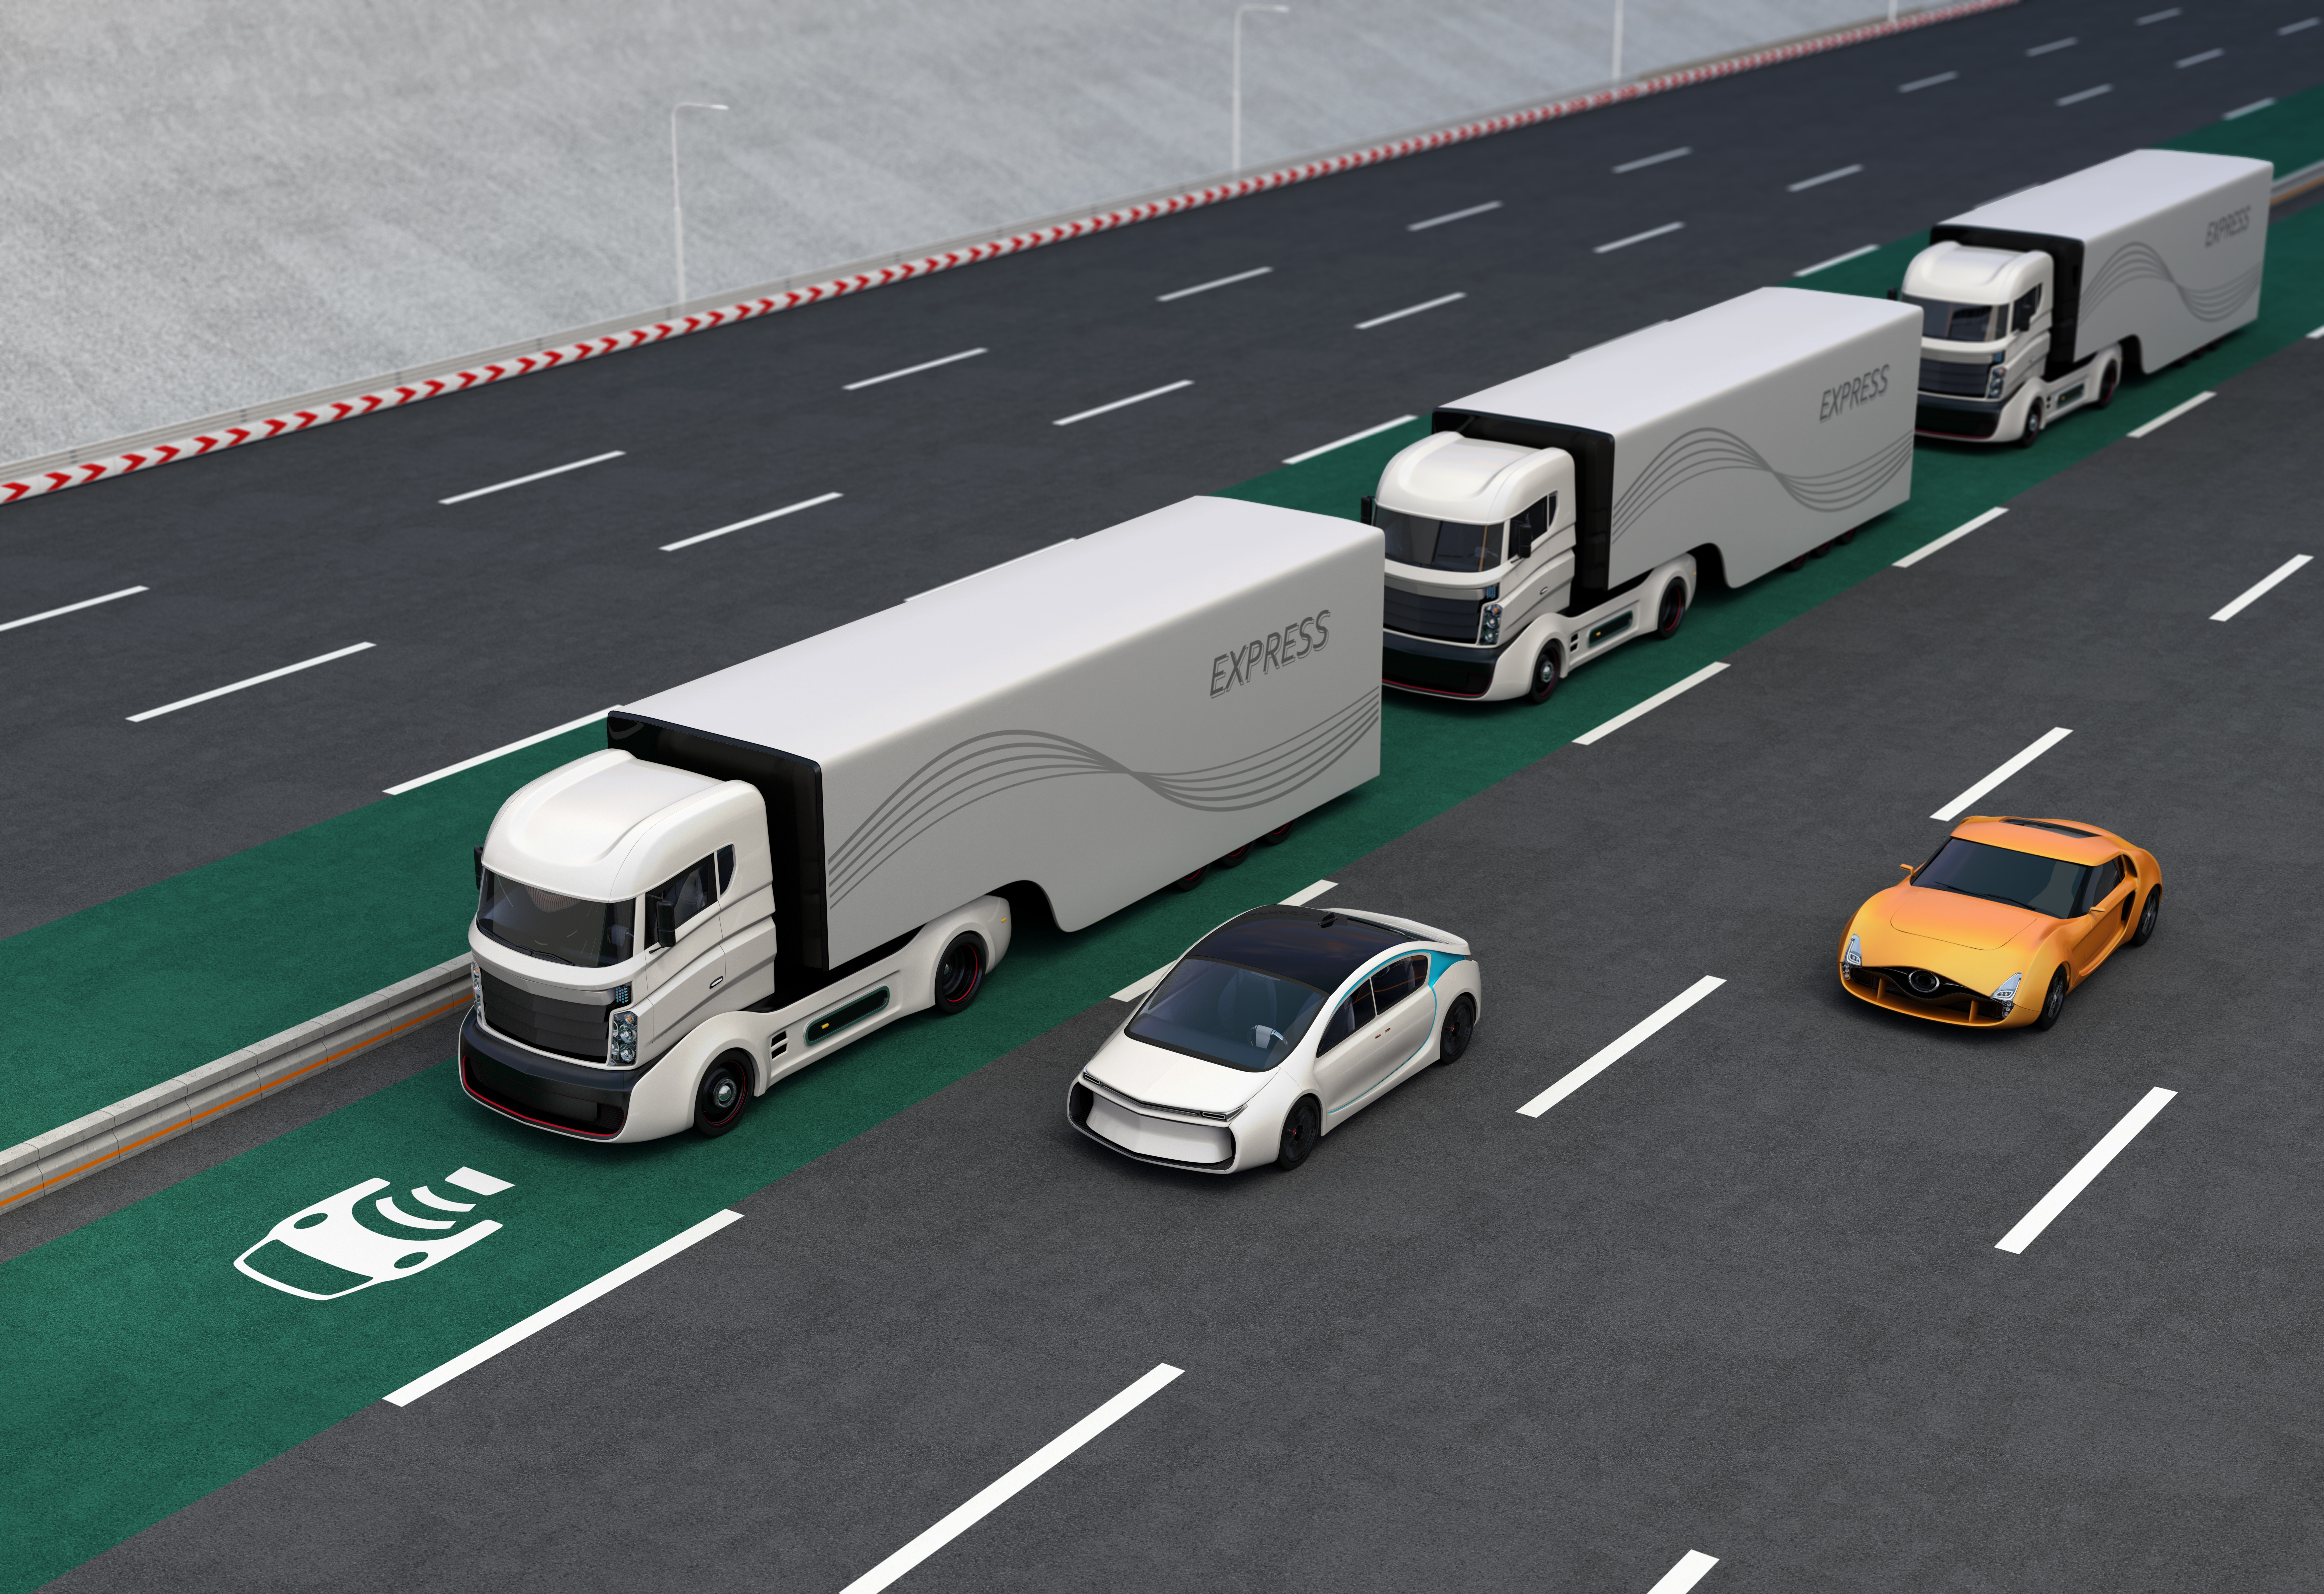 Truck Platooning can save money and increase safety